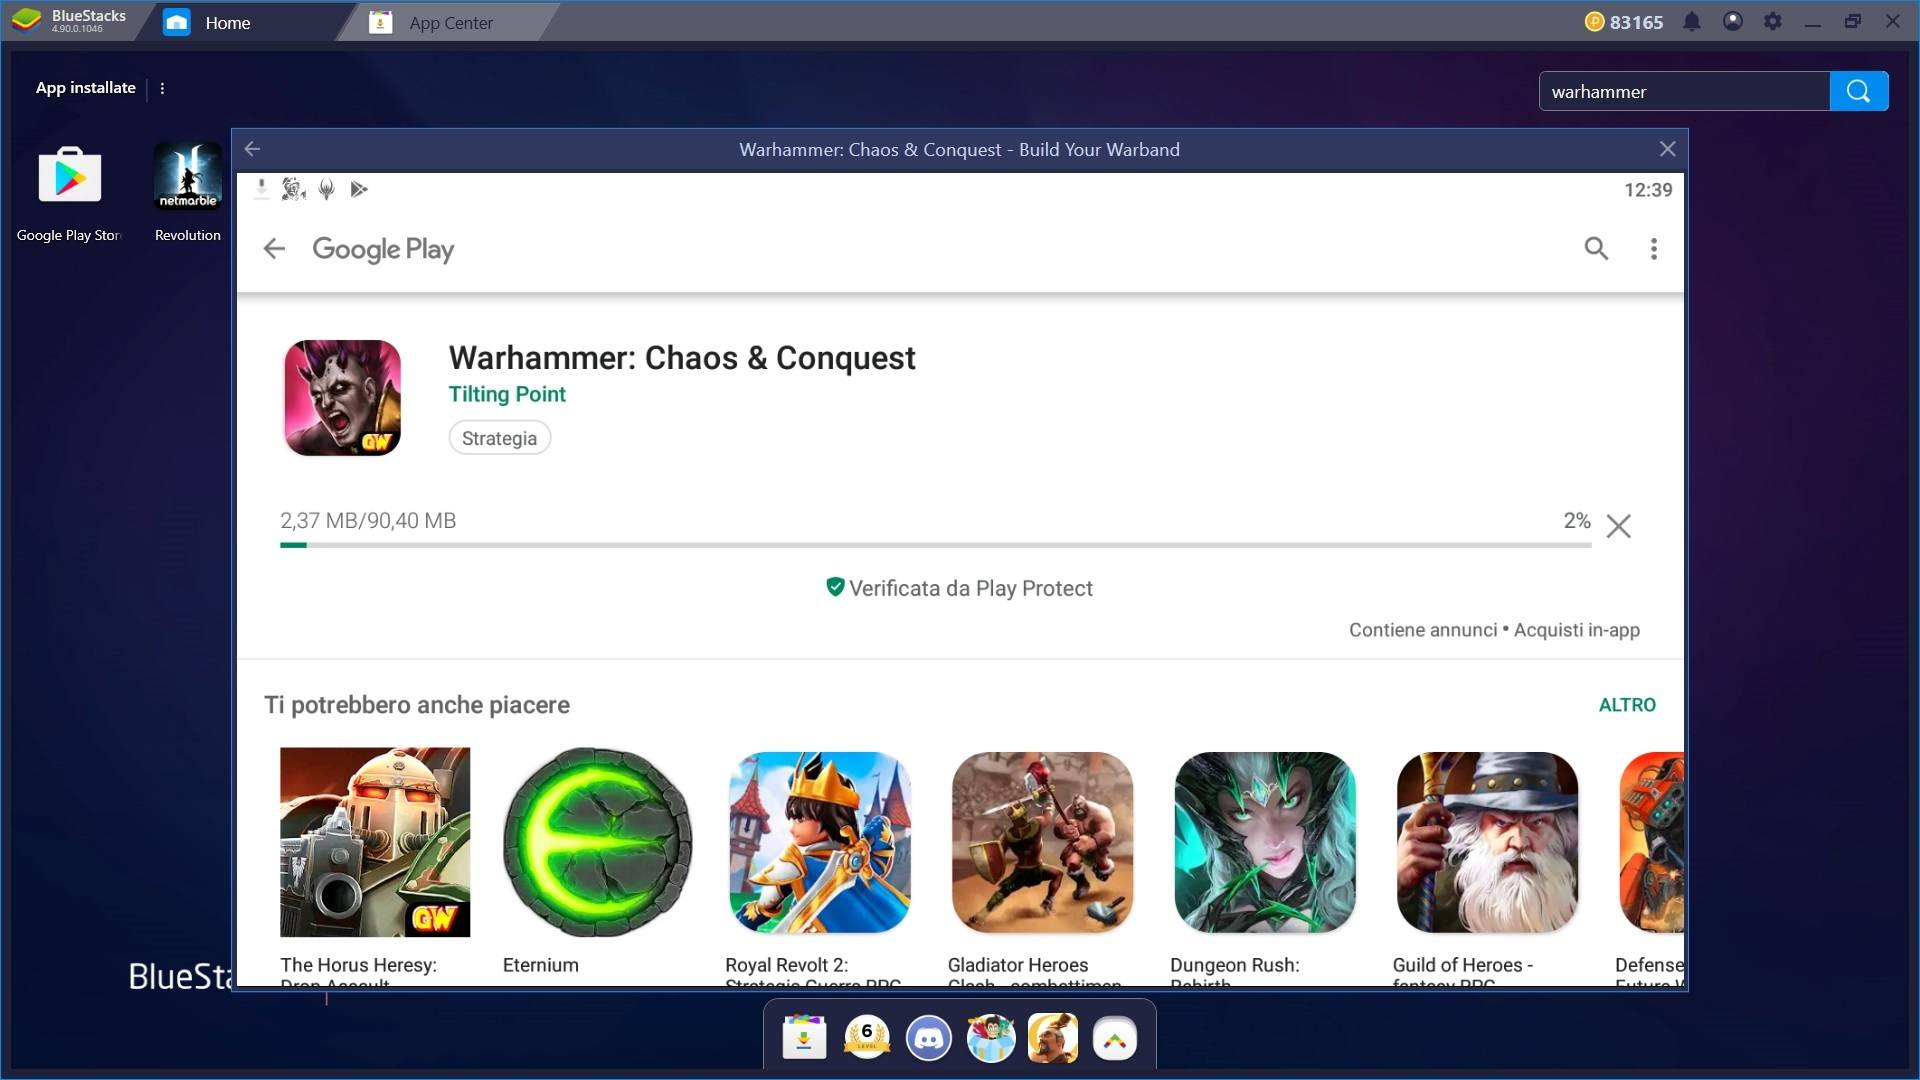 Gioca Warhammer Chaos & Conquest con Bluestacks 4